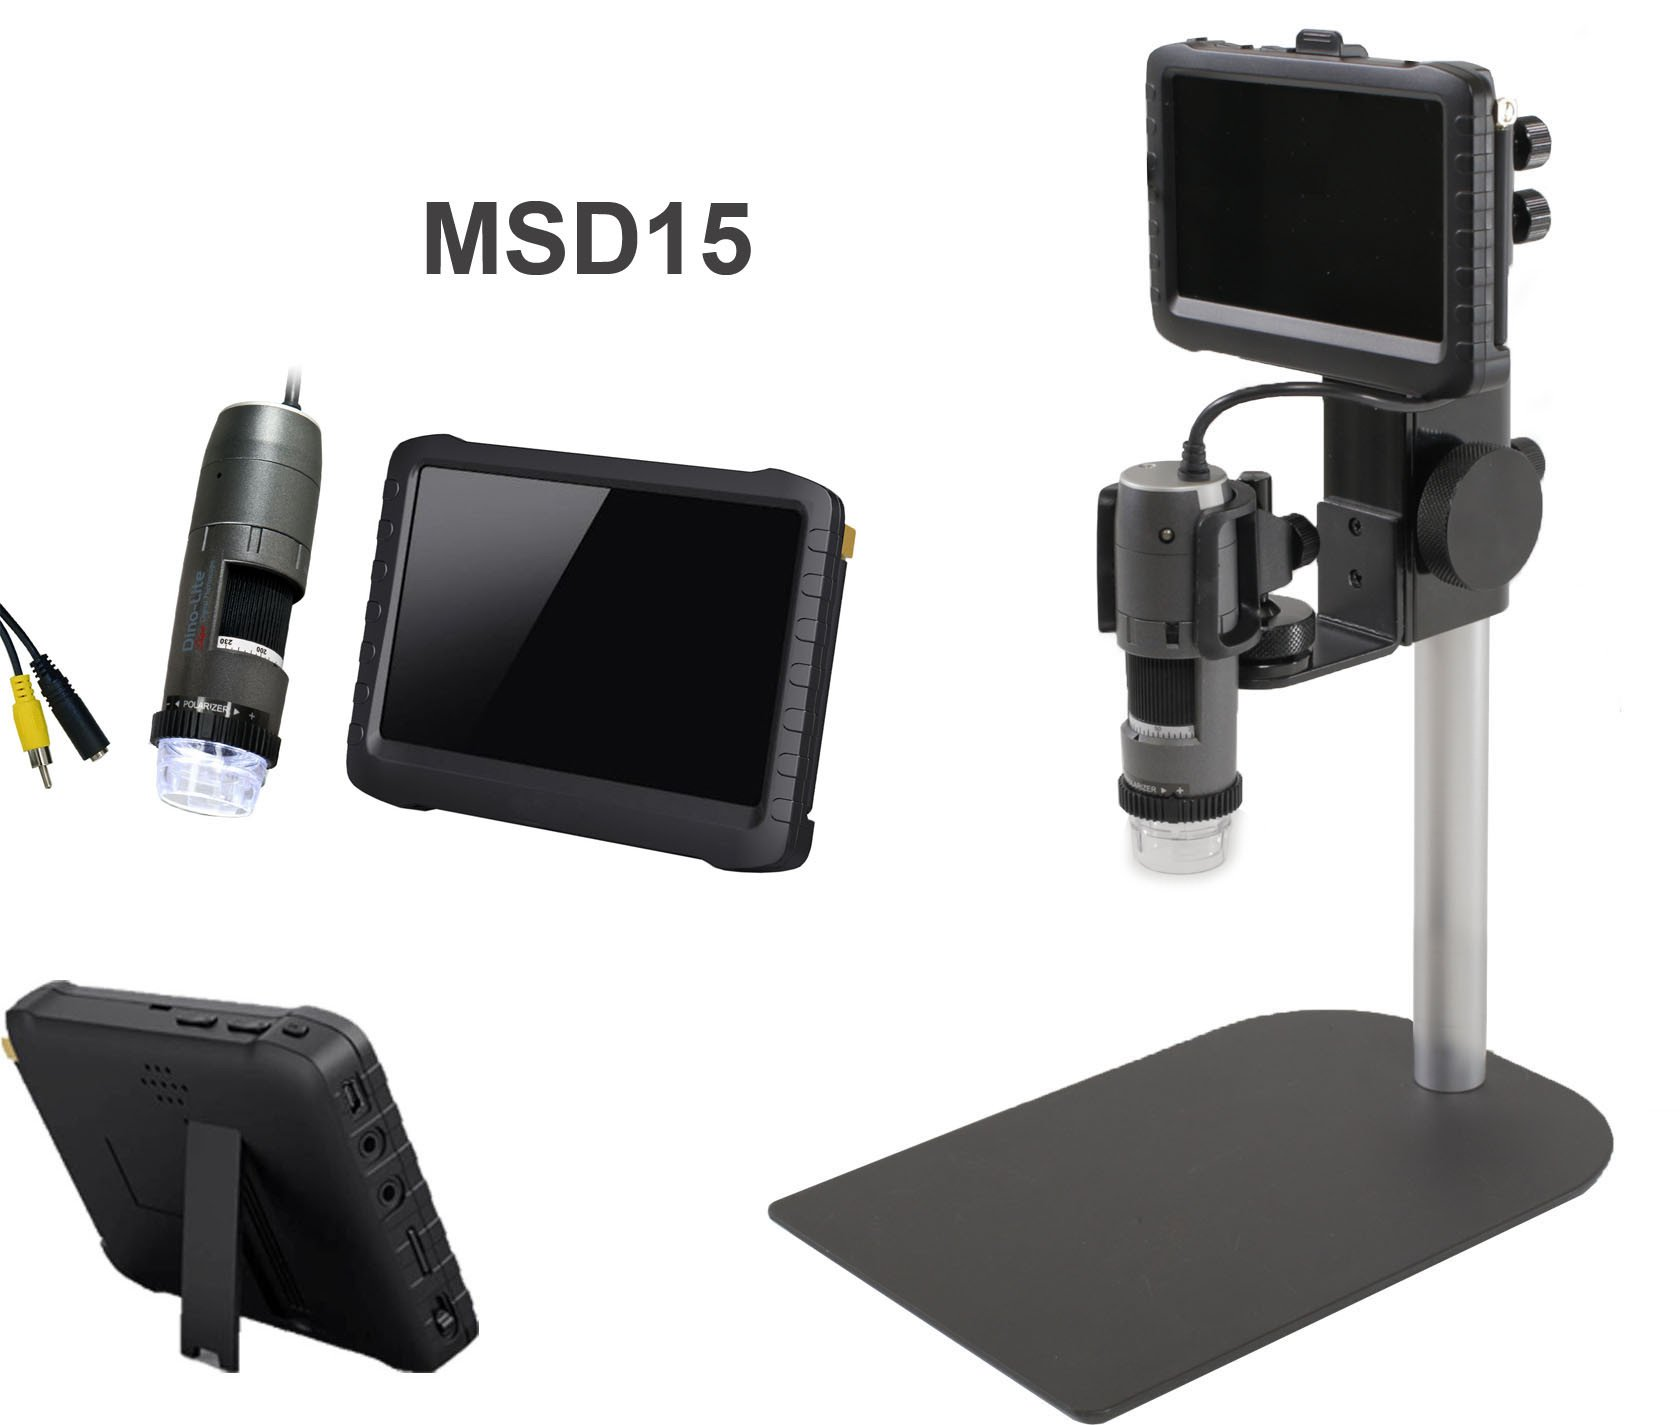 MSD15 Portable LCD Screen with Video/Audio Recorder